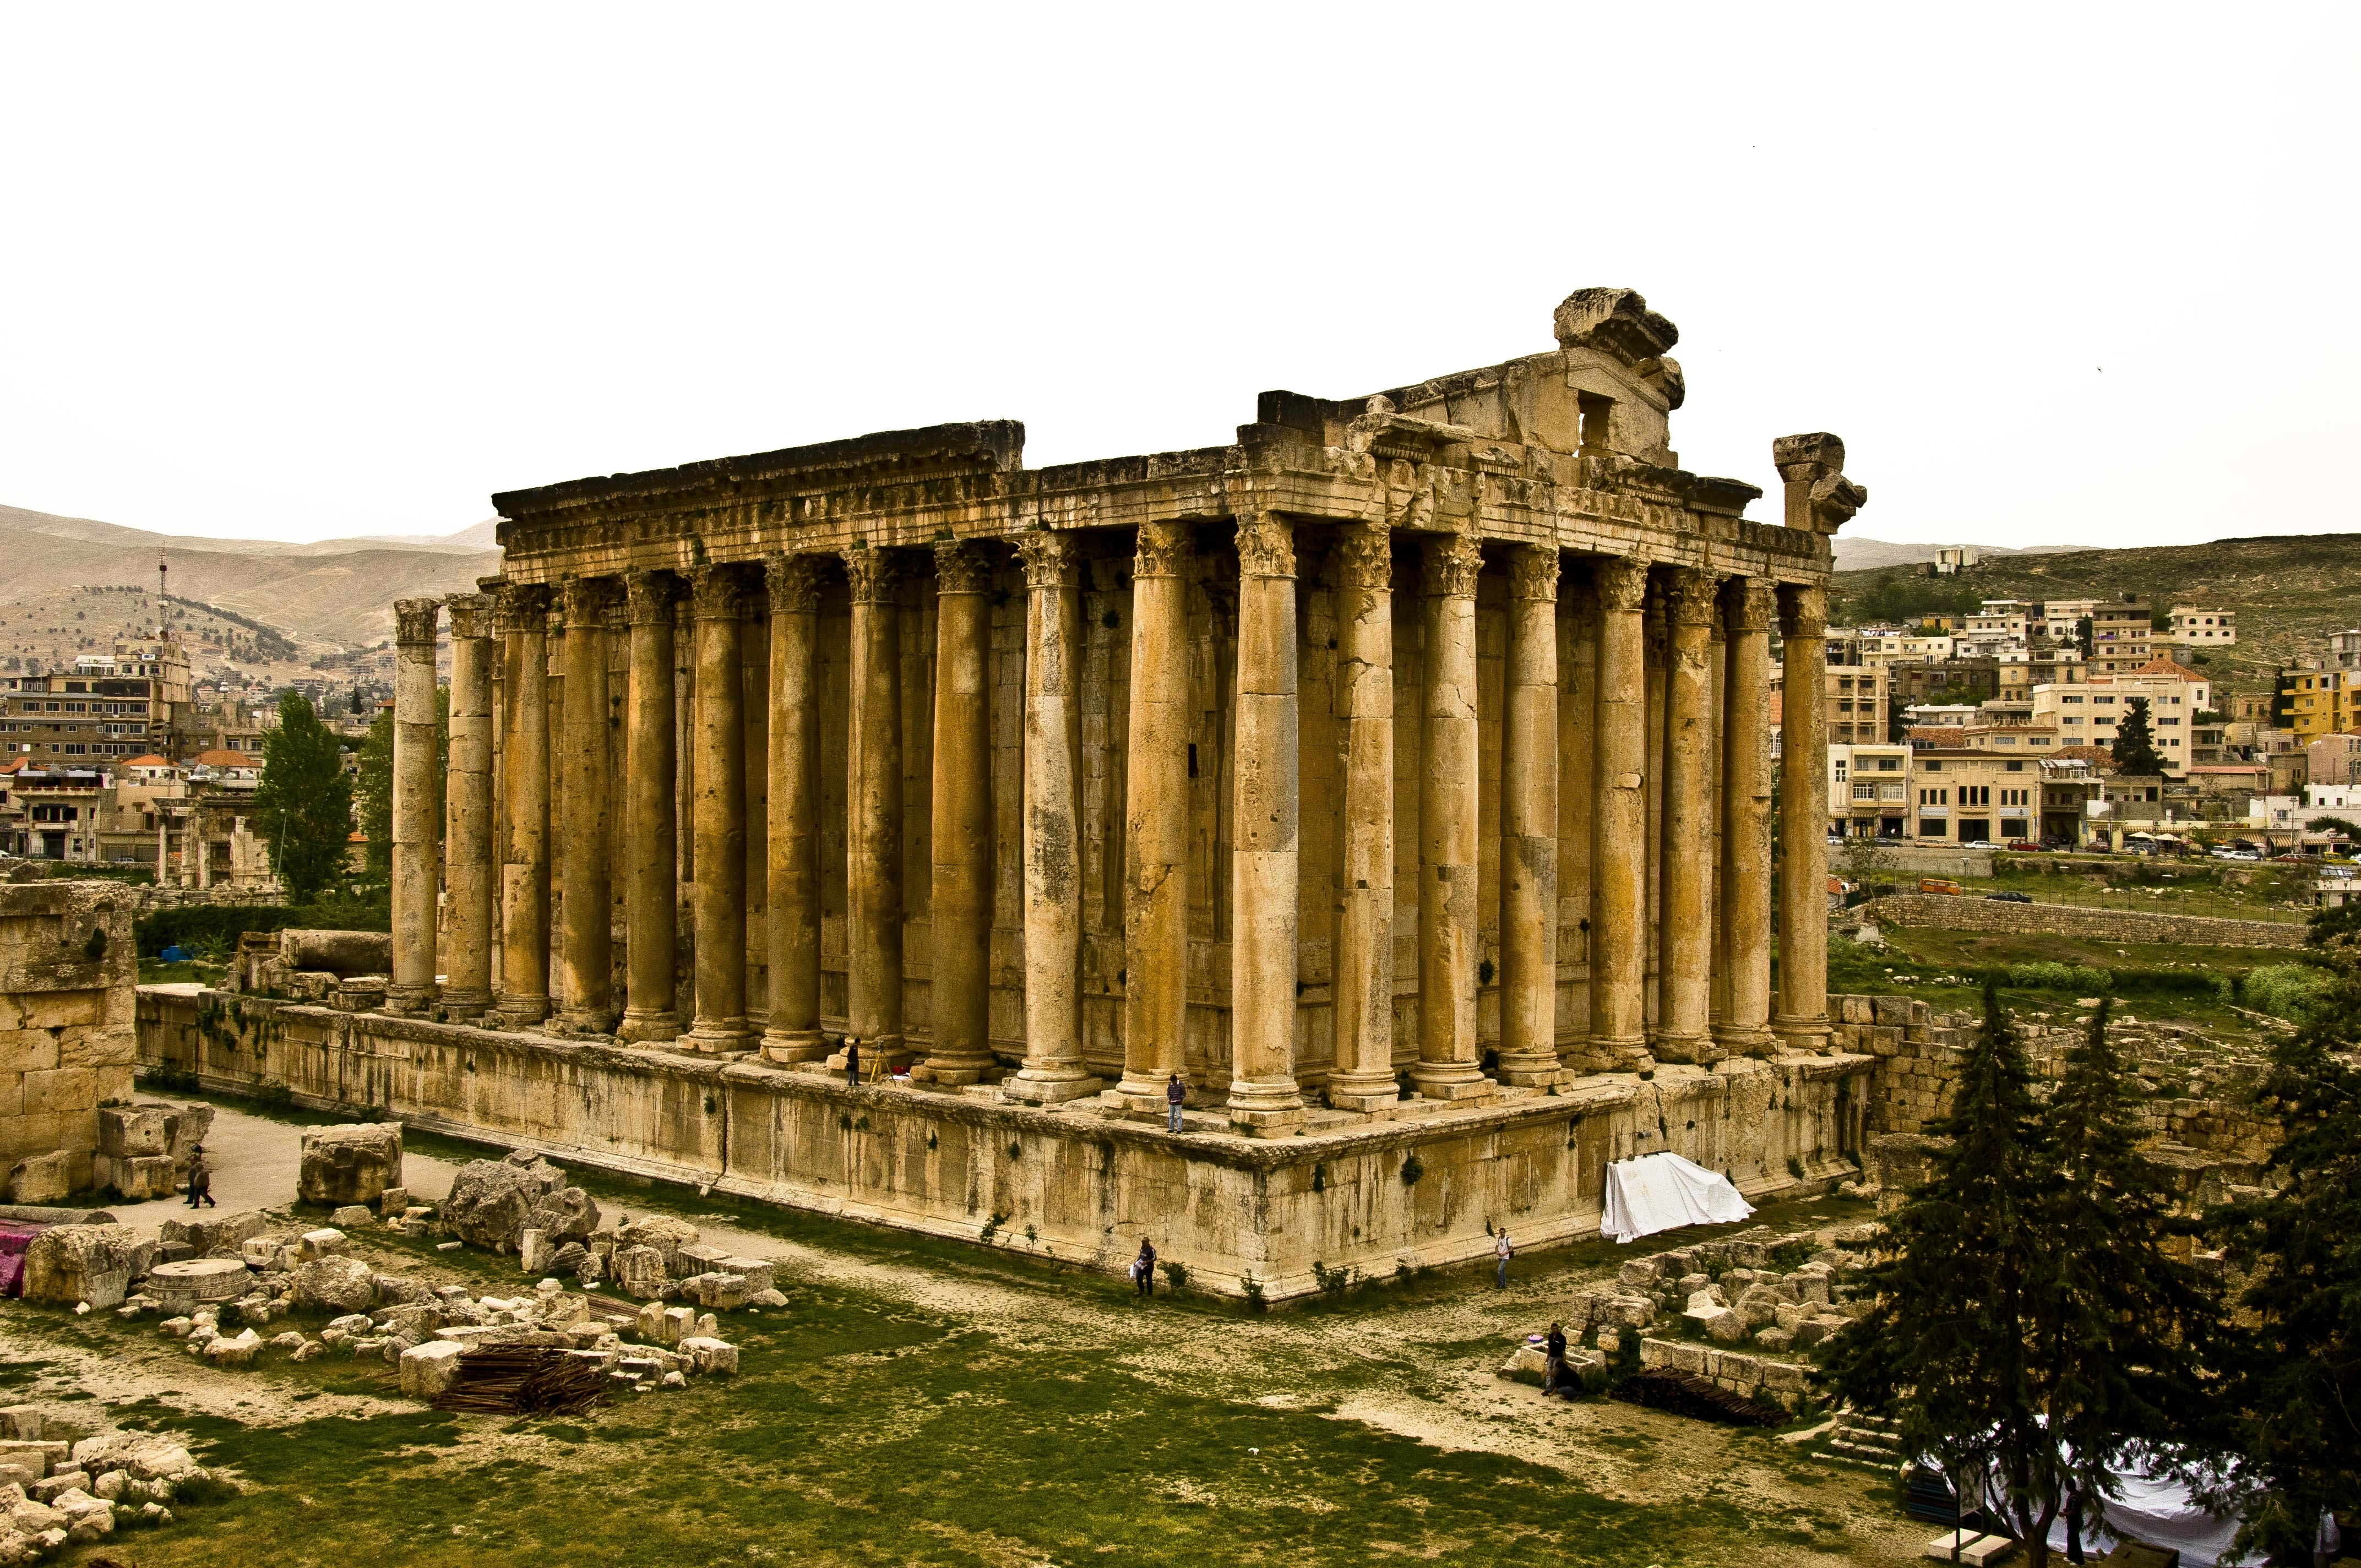 Anicent Roman temple in Baalbek